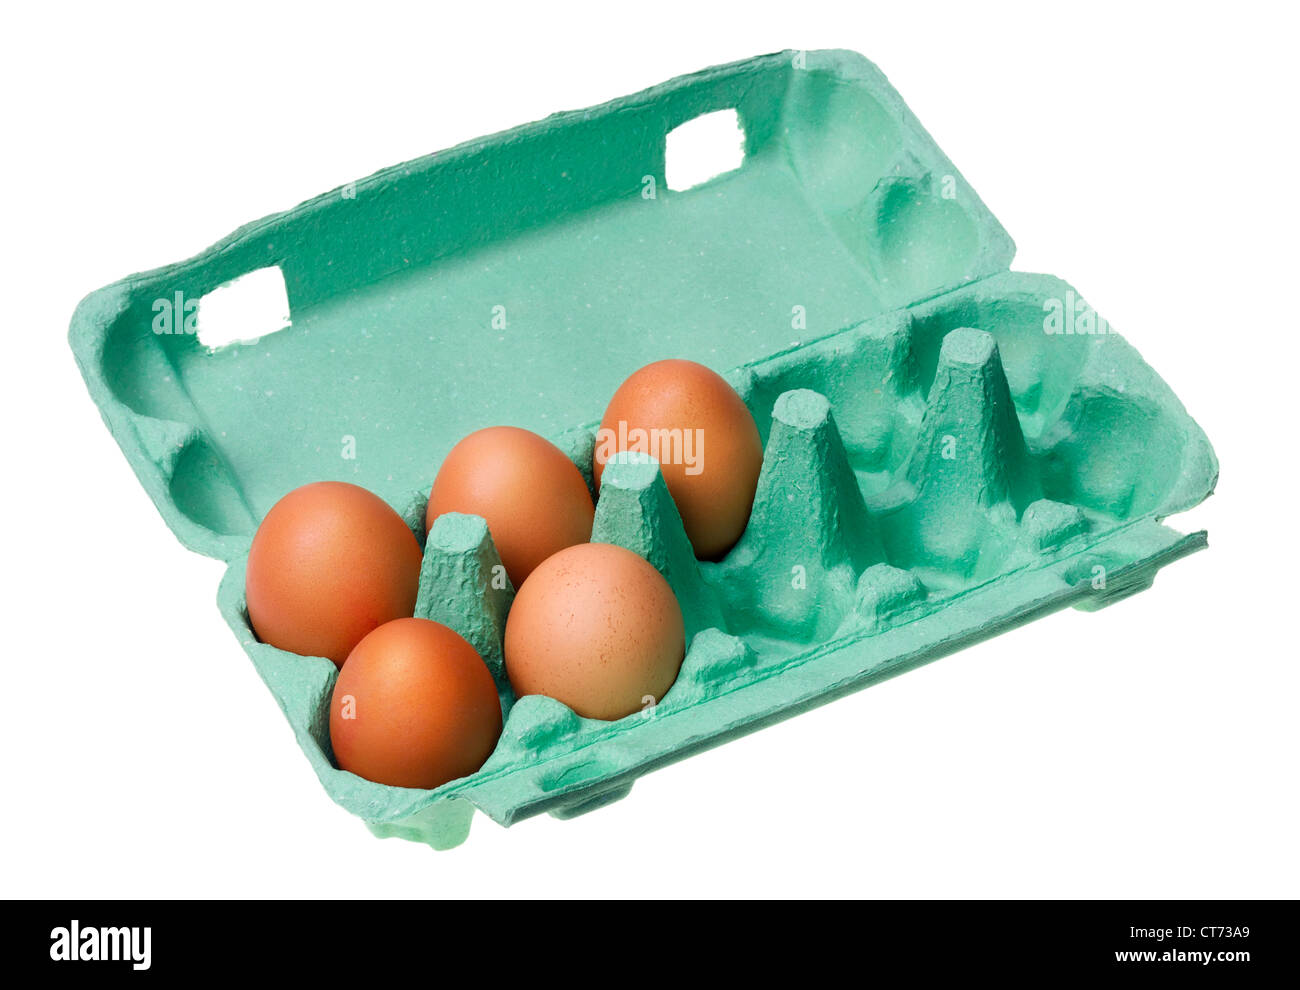 five red raw eggs lie in a green cardboard packaging environment isolated - Stock Image